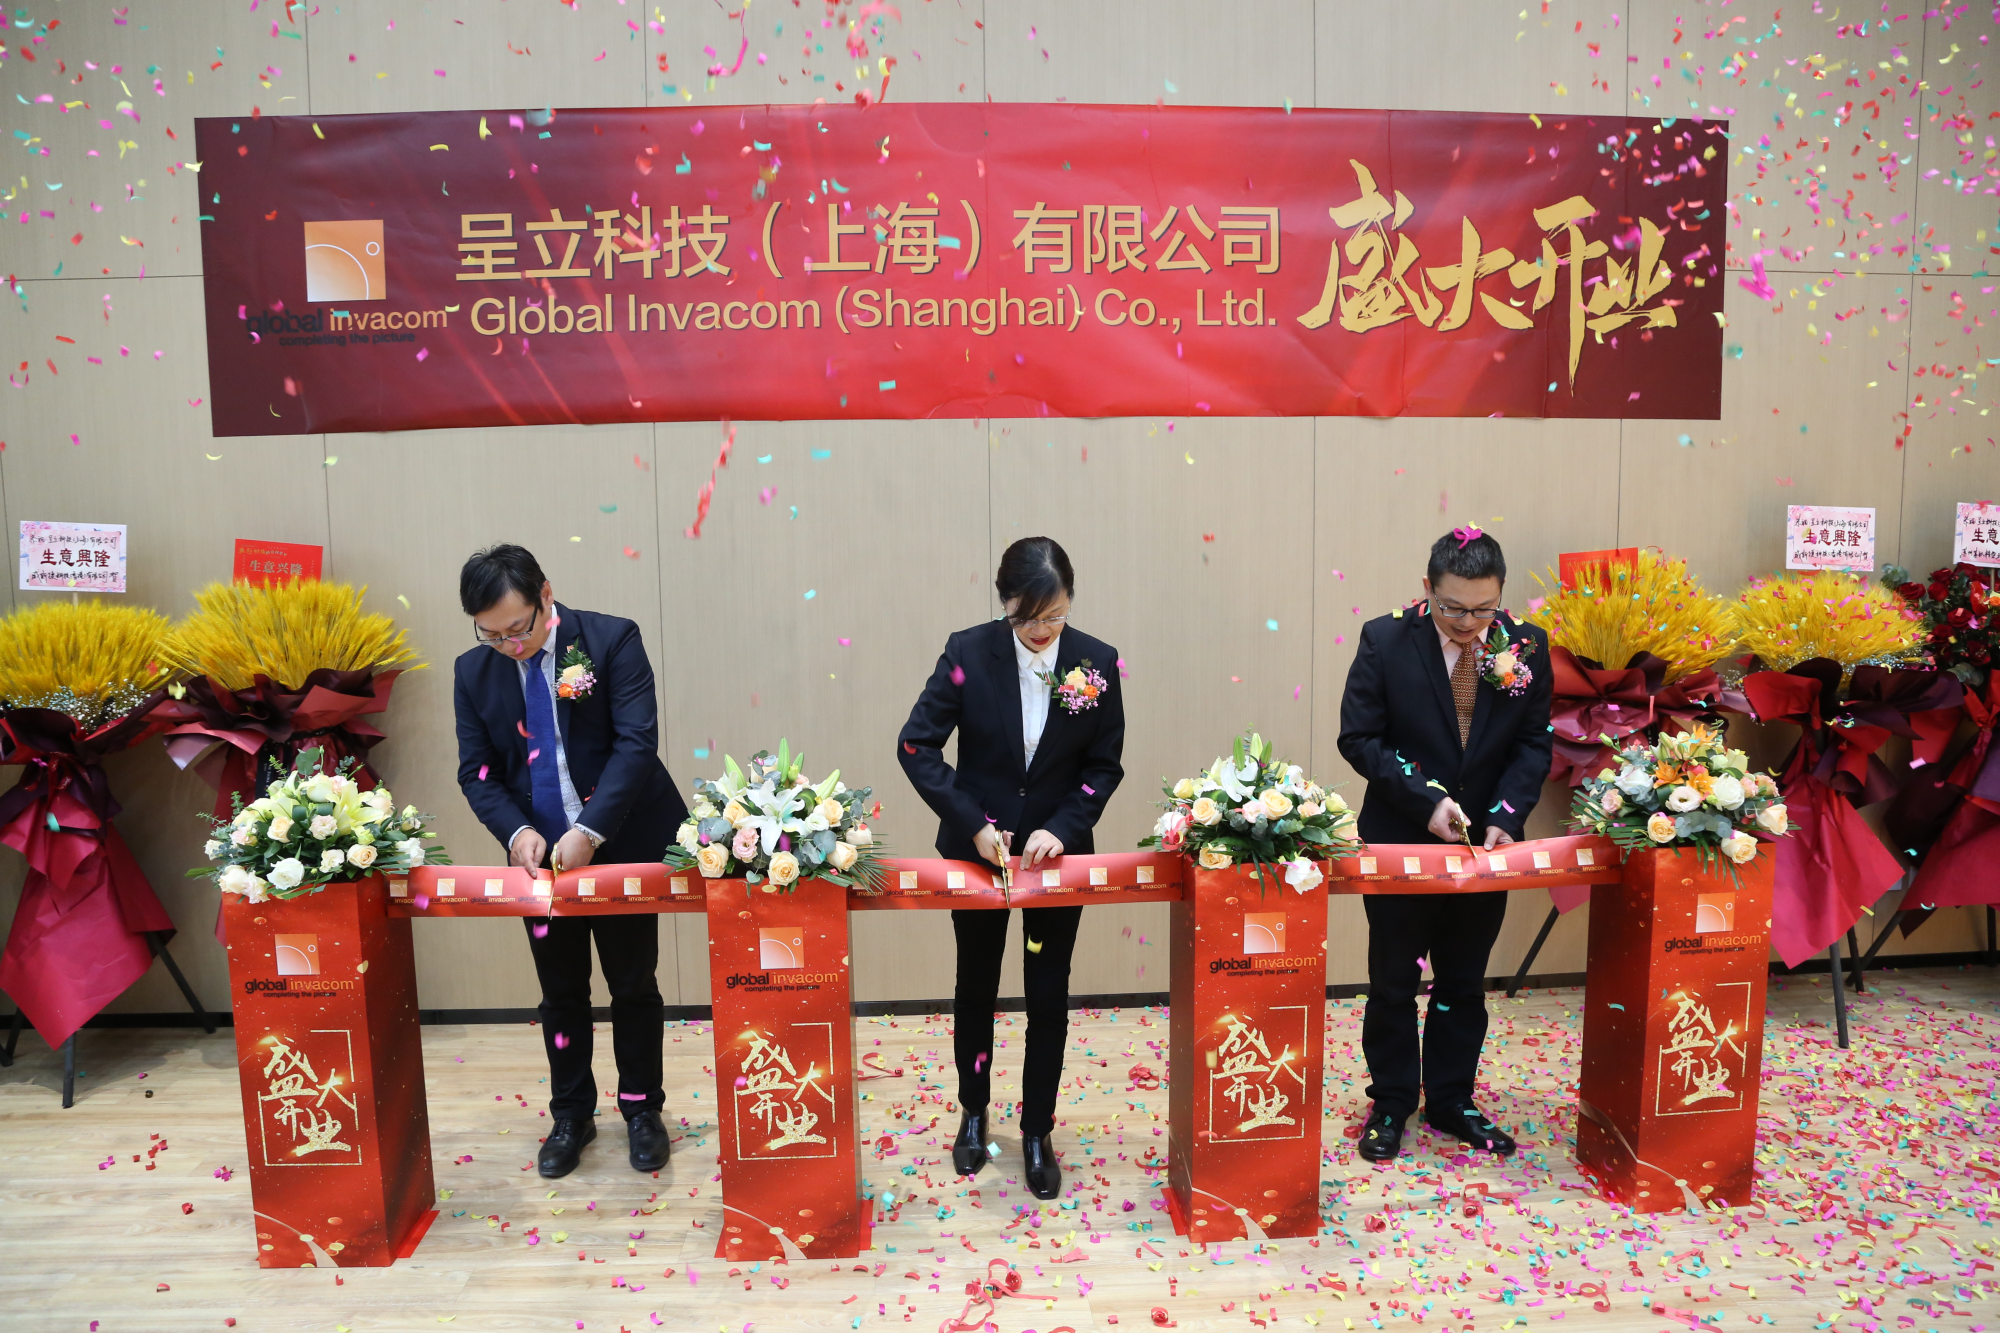 Global Invacom (Shanghai) Co., Ltd incorporated in China and opens new location for Global Invacom Group